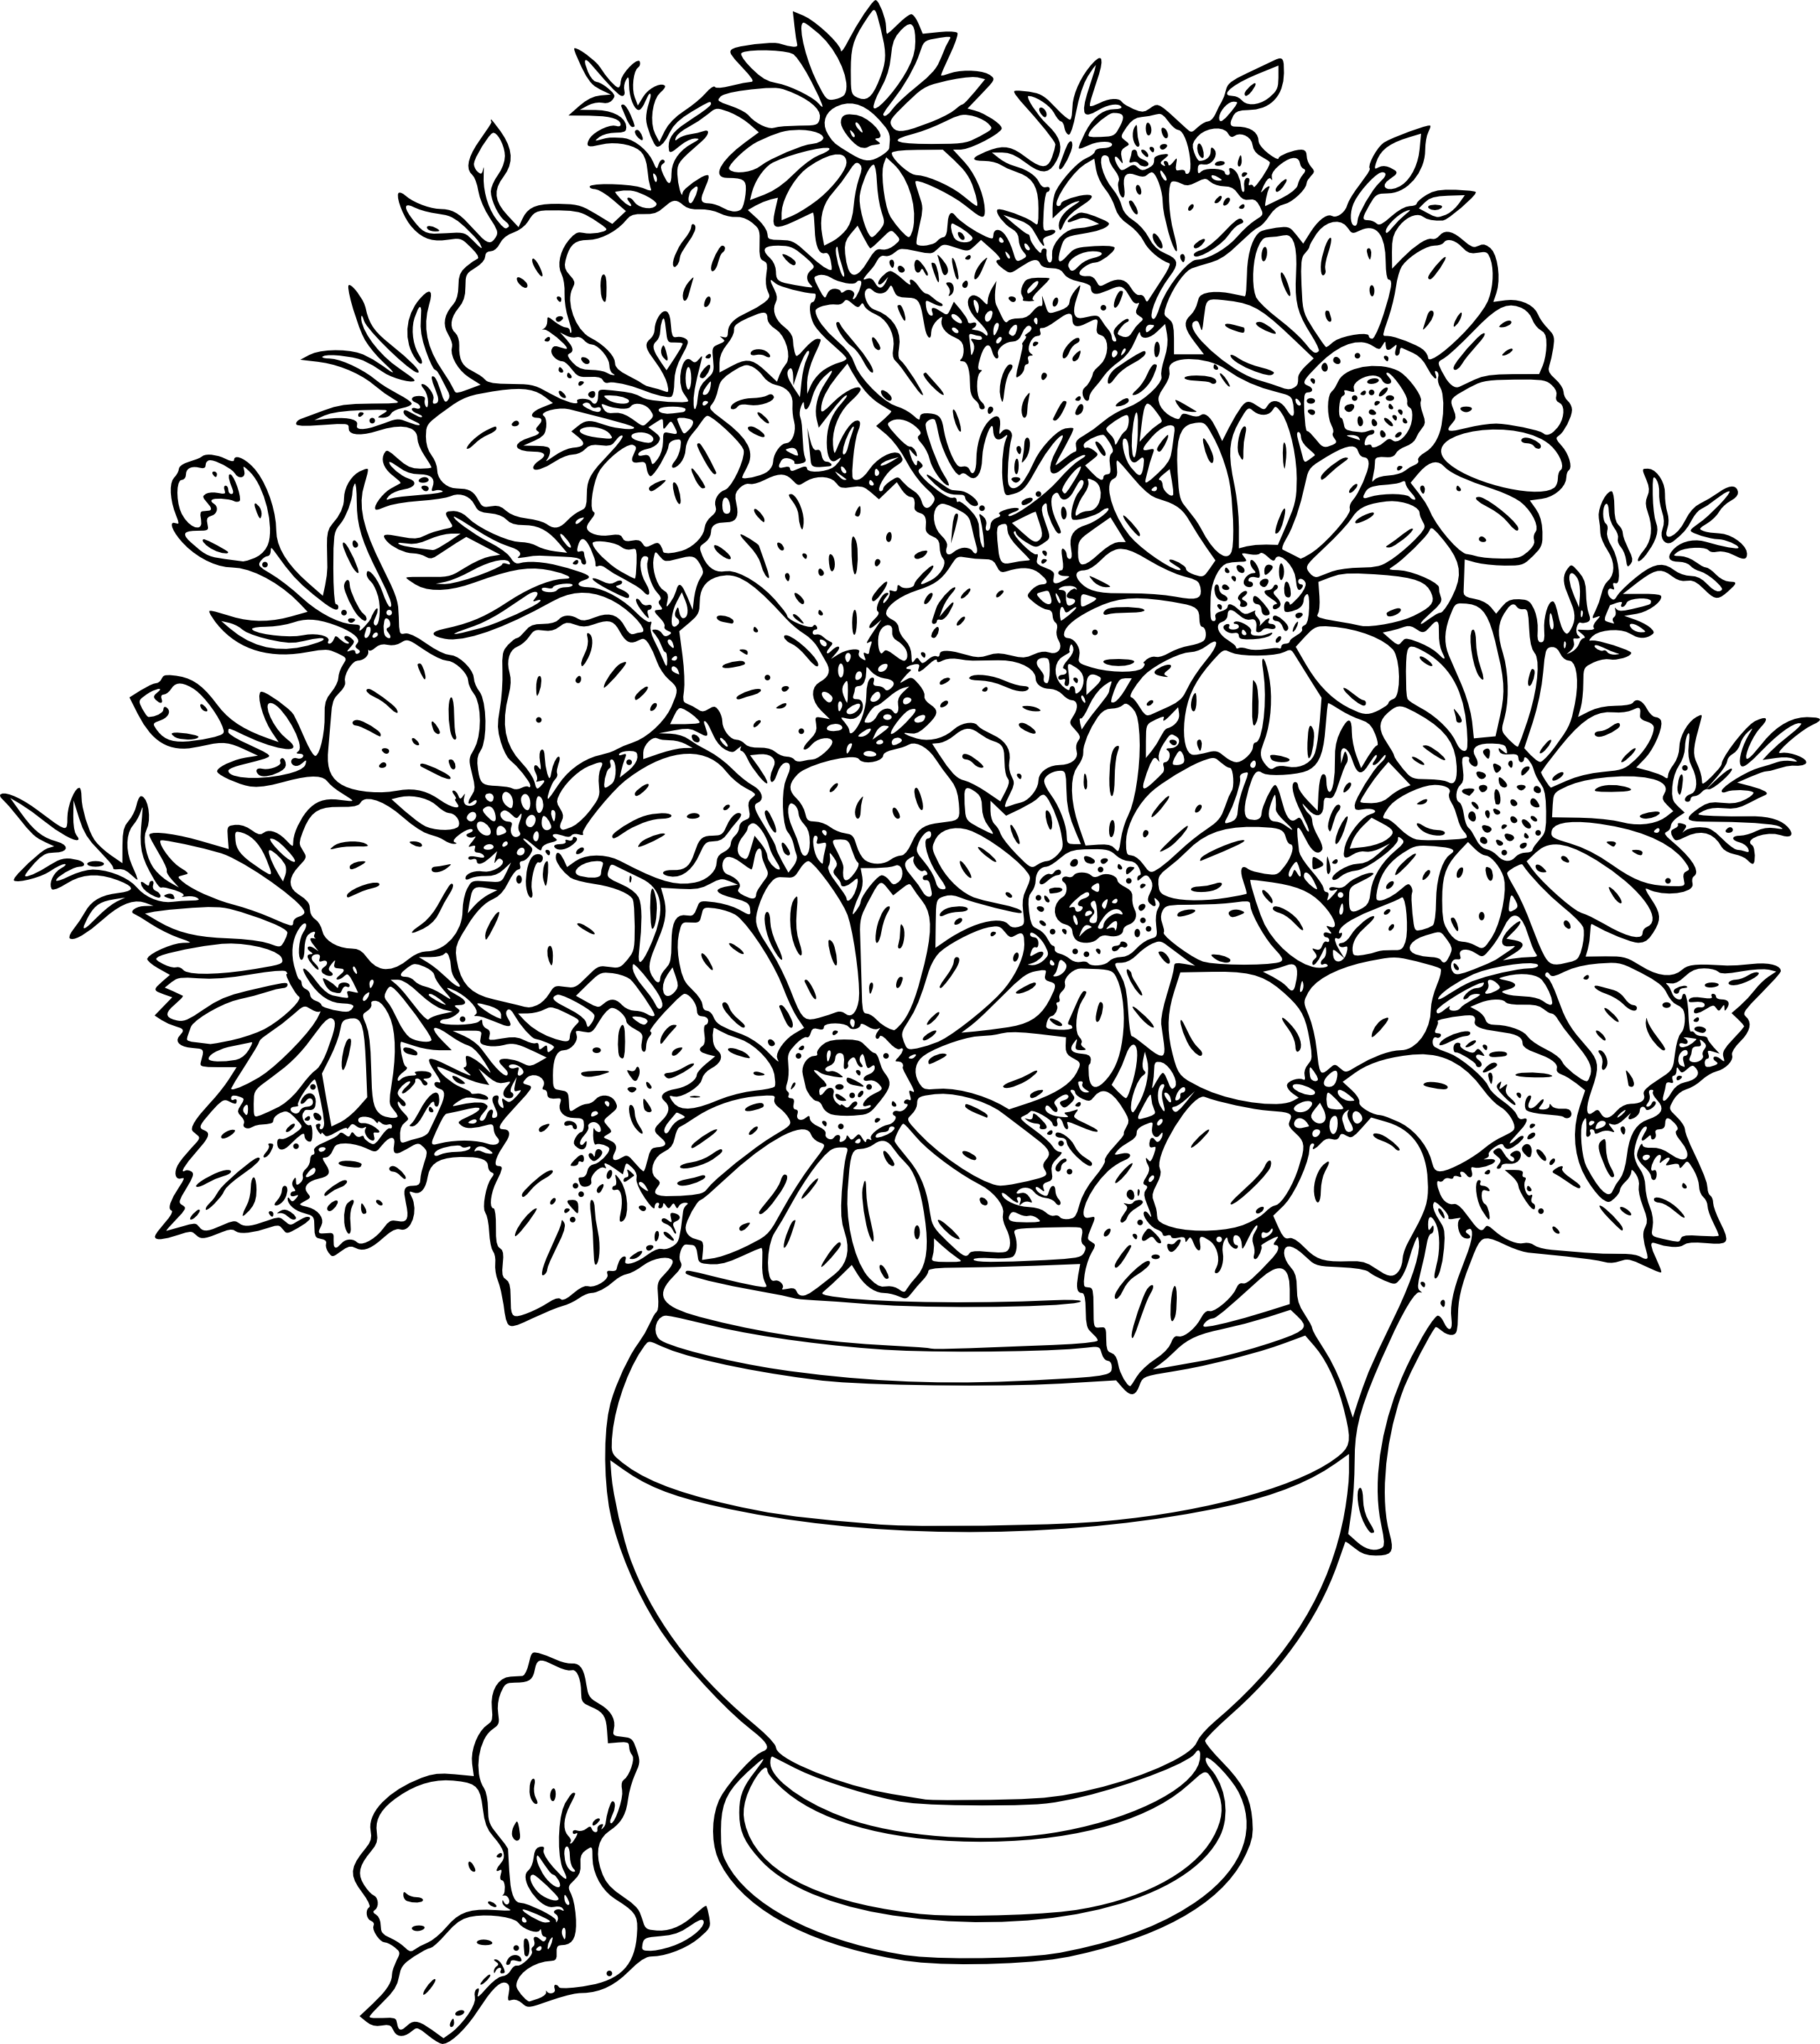 Line Drawing Flowers : Flowers line drawing images clipart best